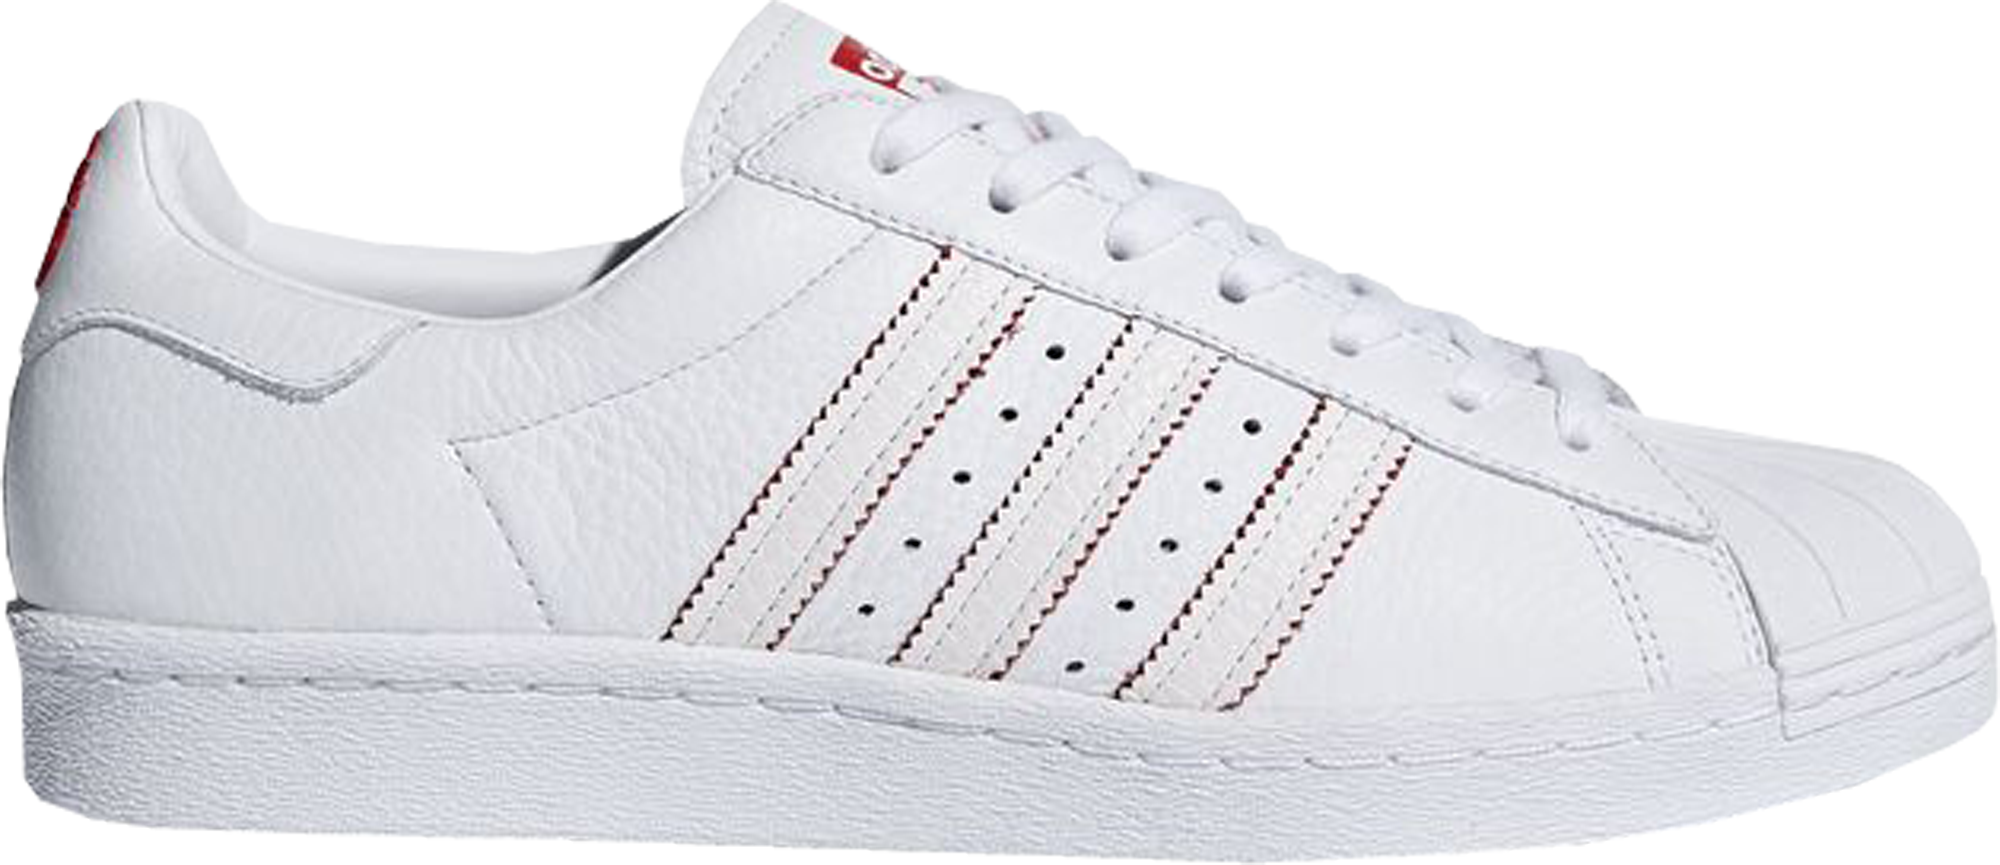 adidas superstar 80s low blush